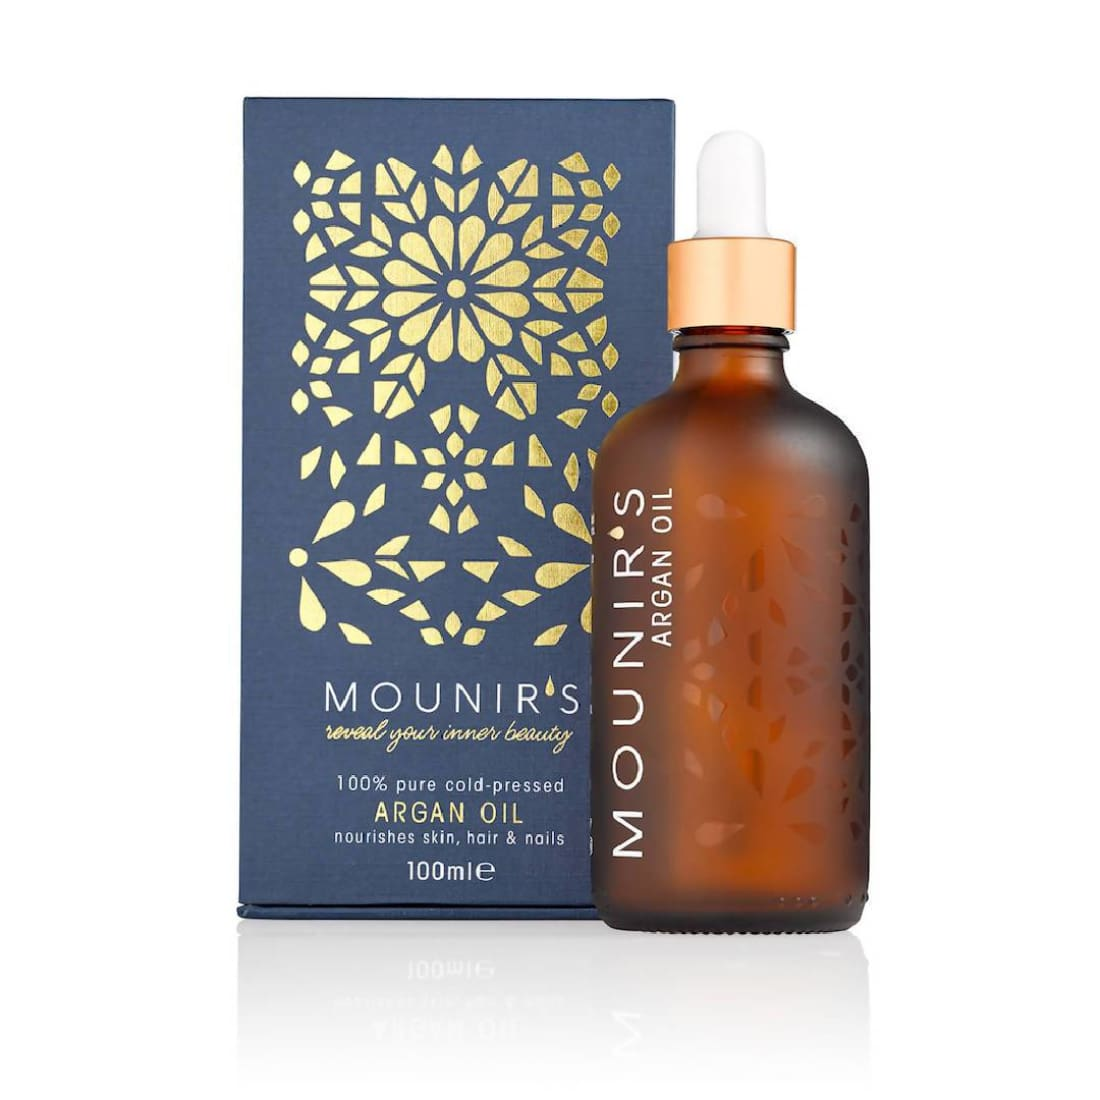 mounirs-argan-oil-free-shipping-gifts-fo